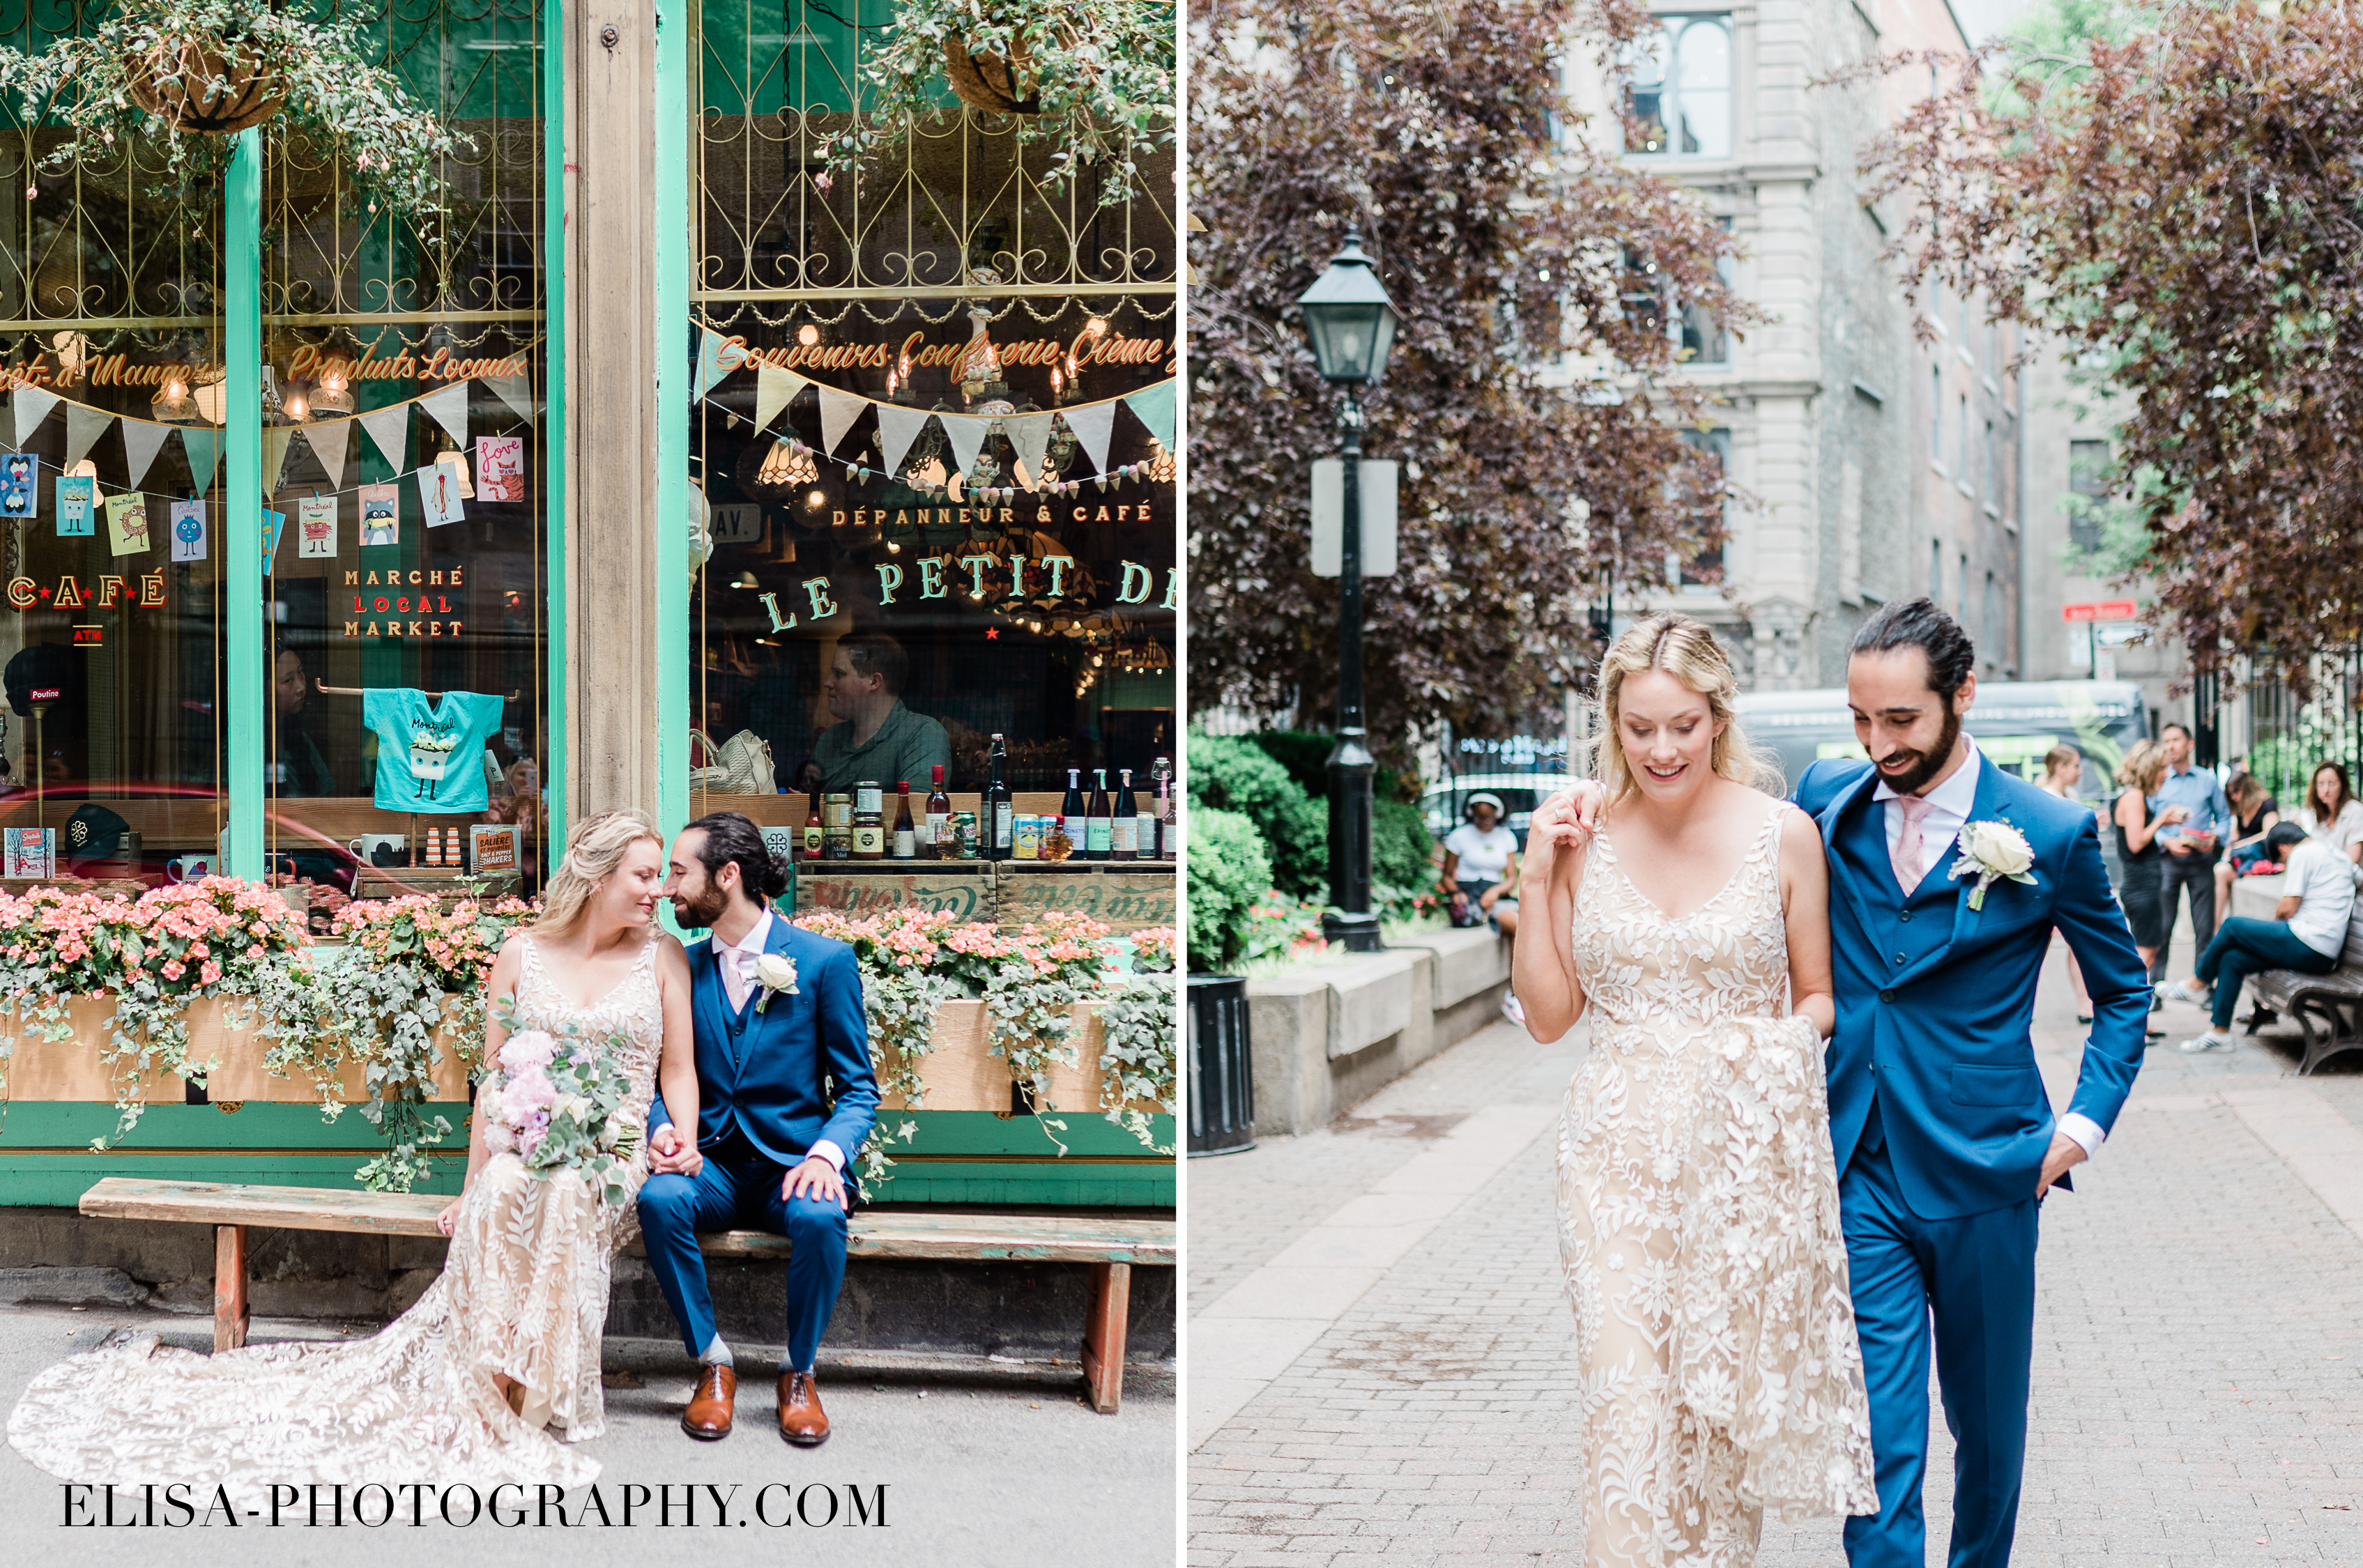 PHOTO mariage downtown montreal urban portrait urbain elisa photographe - An elegant wedding under the marquee at the Forest and Stream Club in Montreal